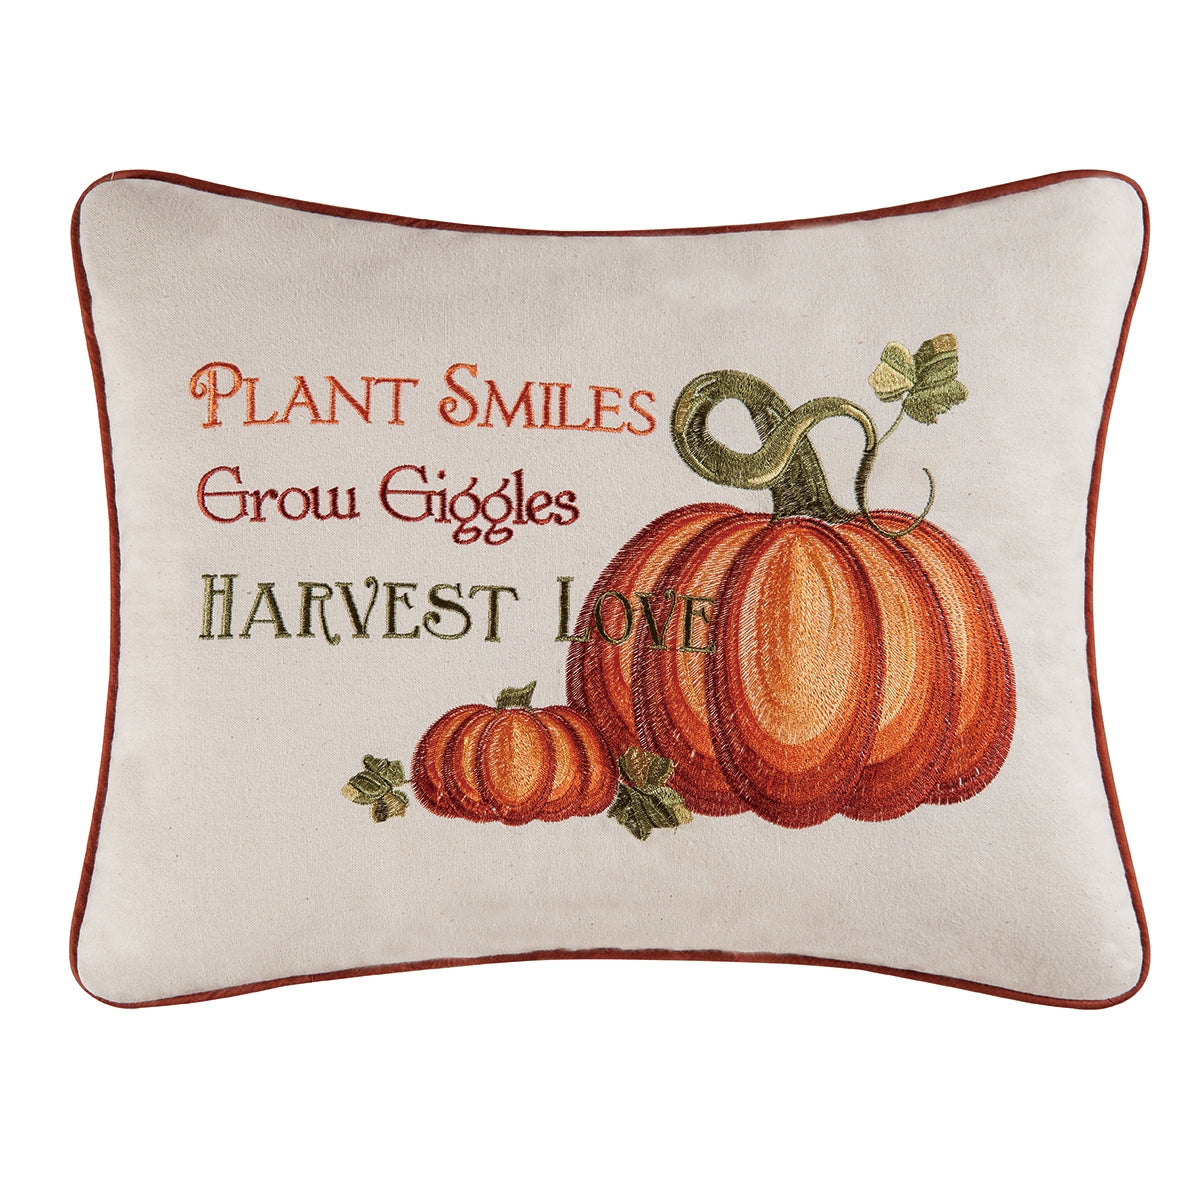 Harvest Love Pumpkin Patch Pillow - Plant Smiles - Grow Giggles - Harvest Love